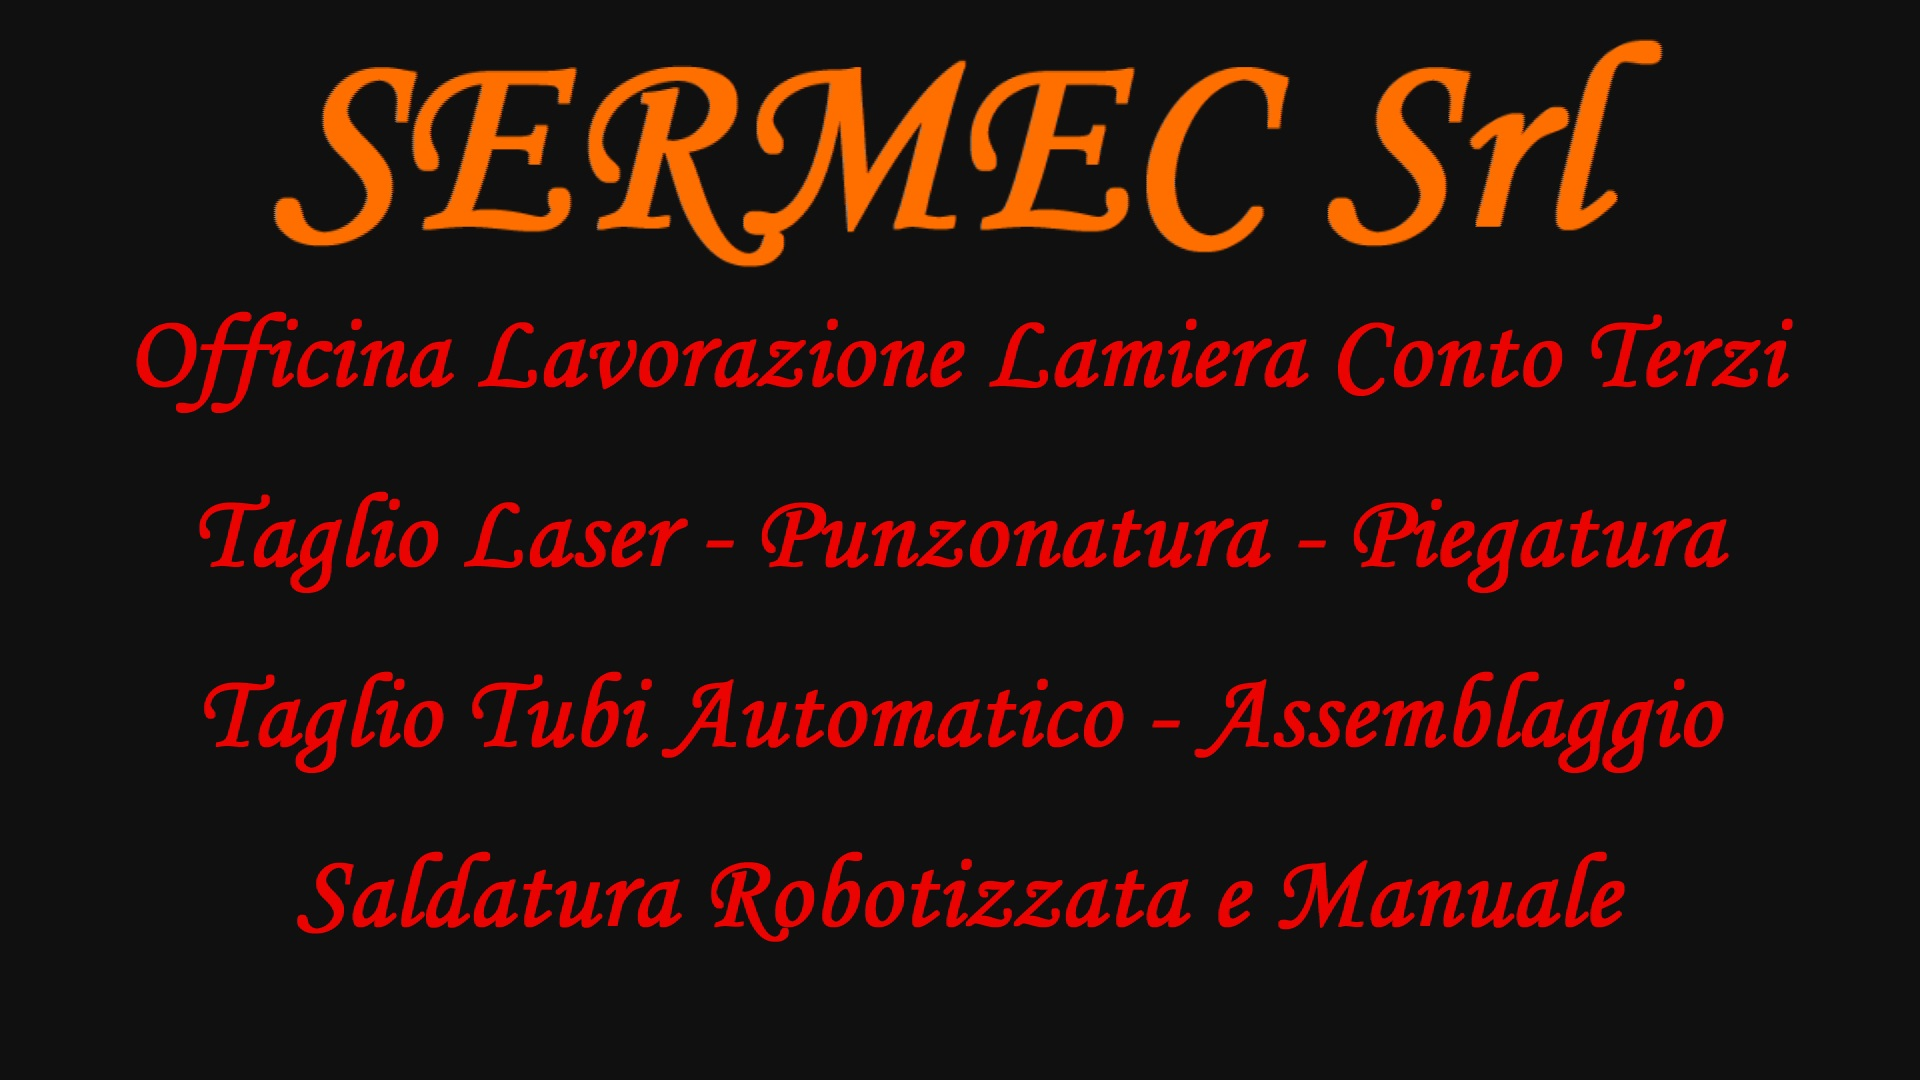 SERMEC-PER-SPONSOR-ASD-BREAK-MC-3